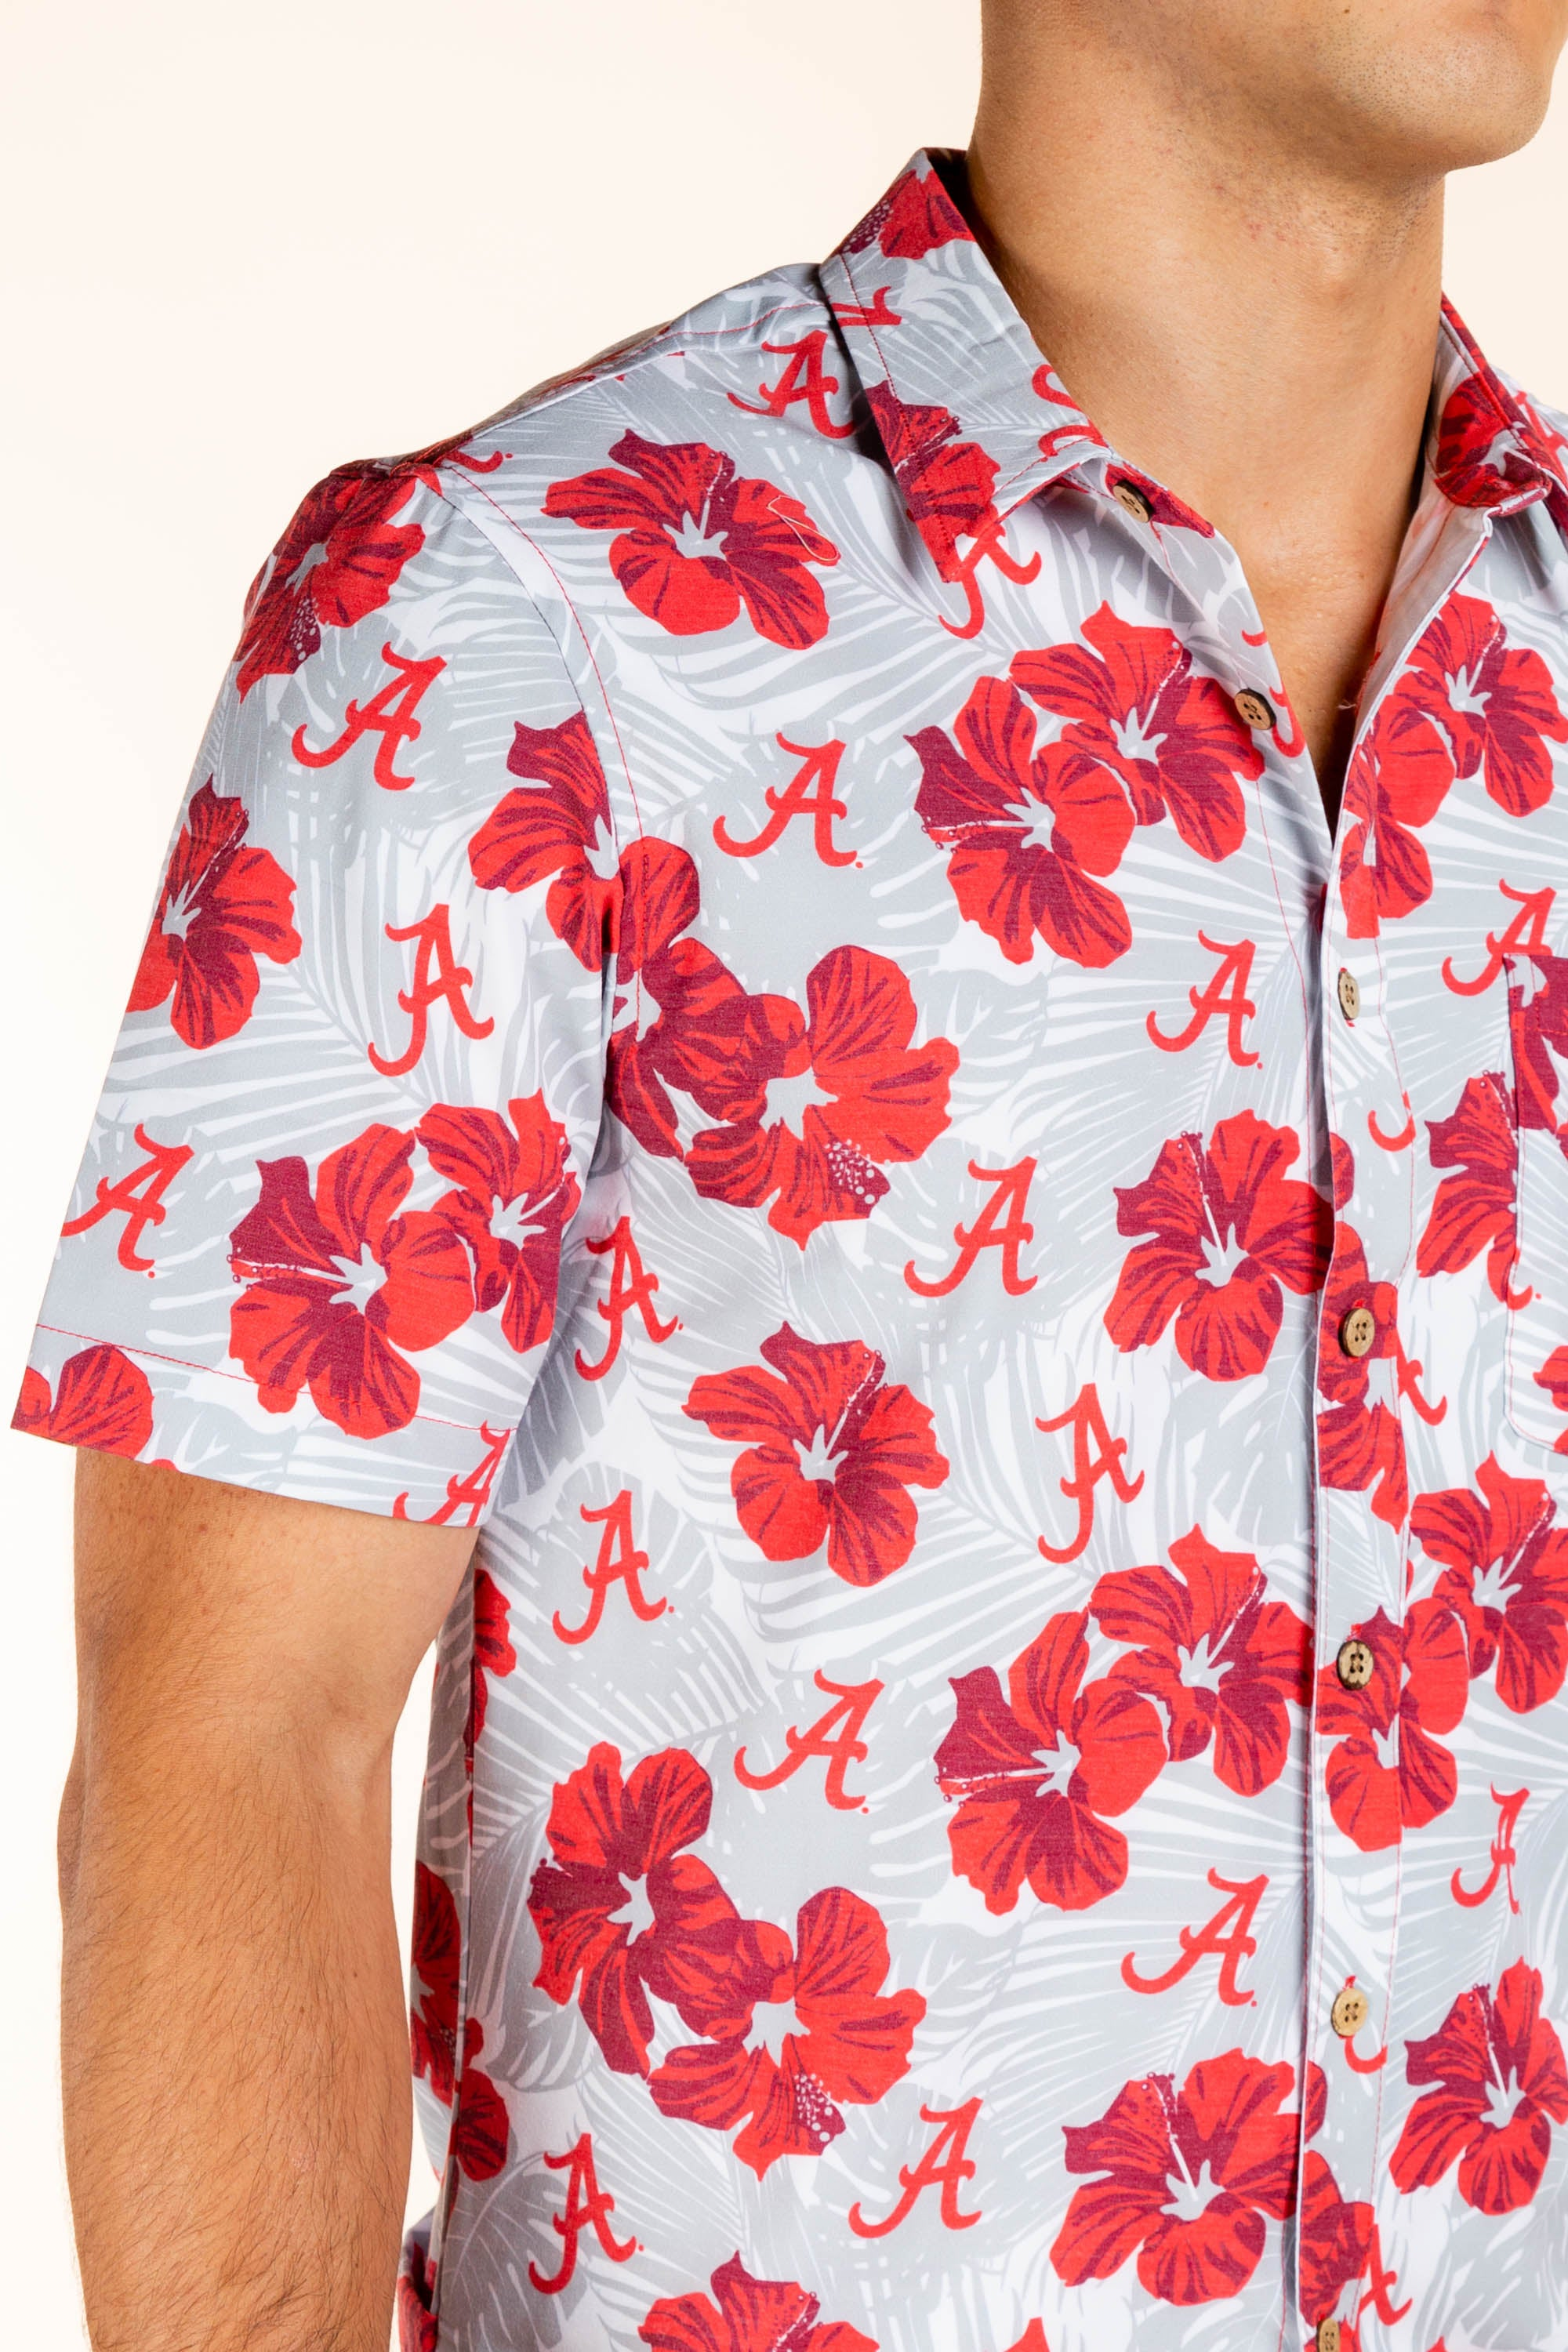 University of Alabama Hawaiian Tailgating Shirt